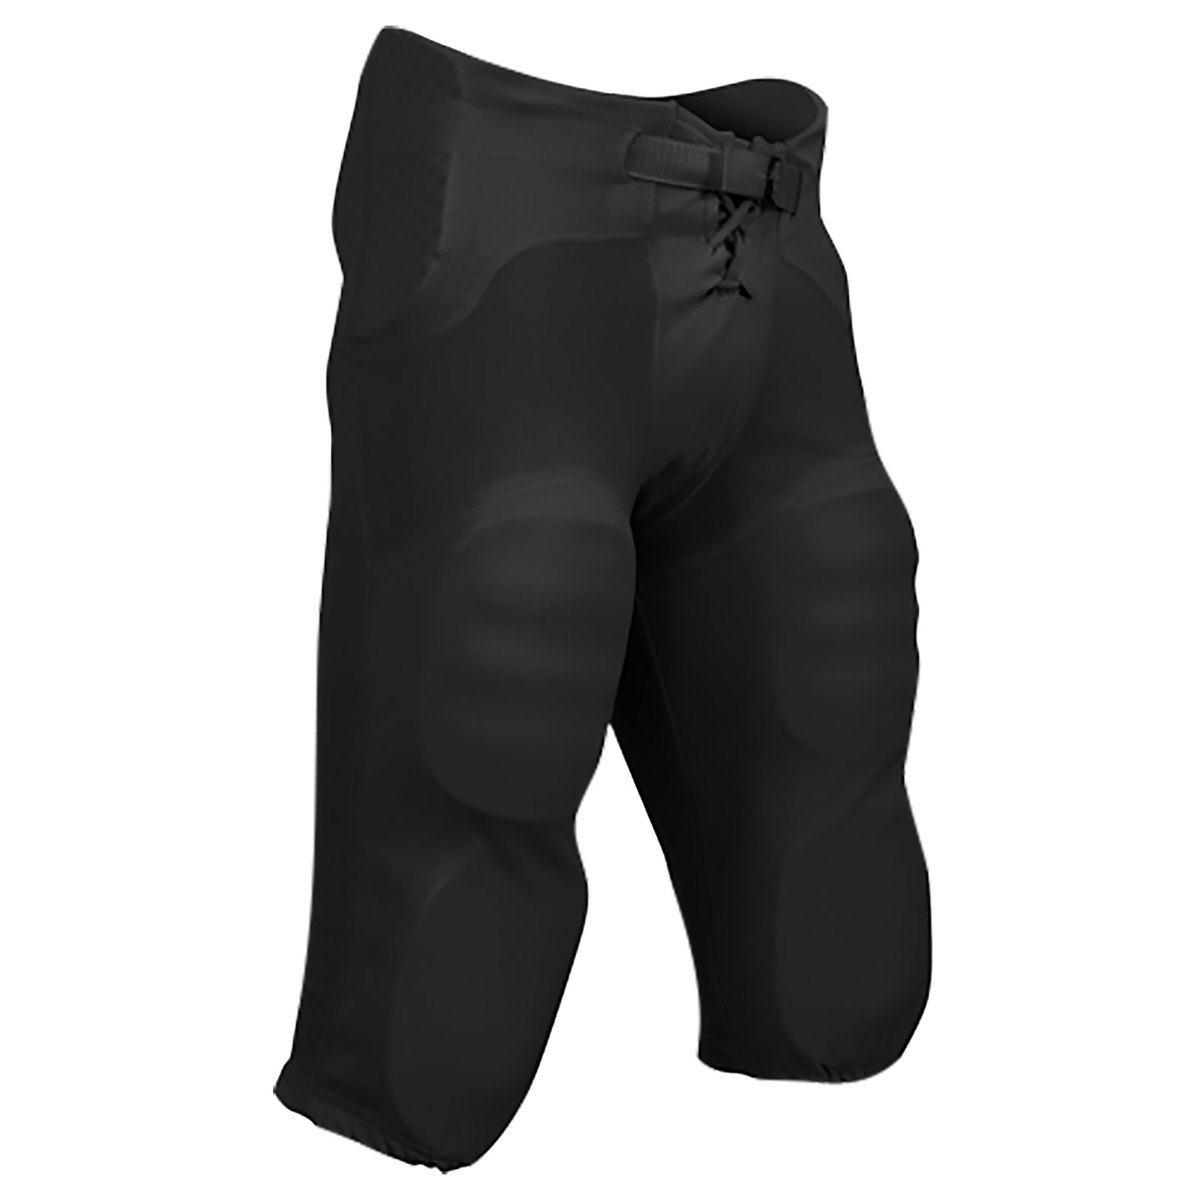 Built-In Pads BLACK Game Pants Champro Football ADULT Integrated Practice